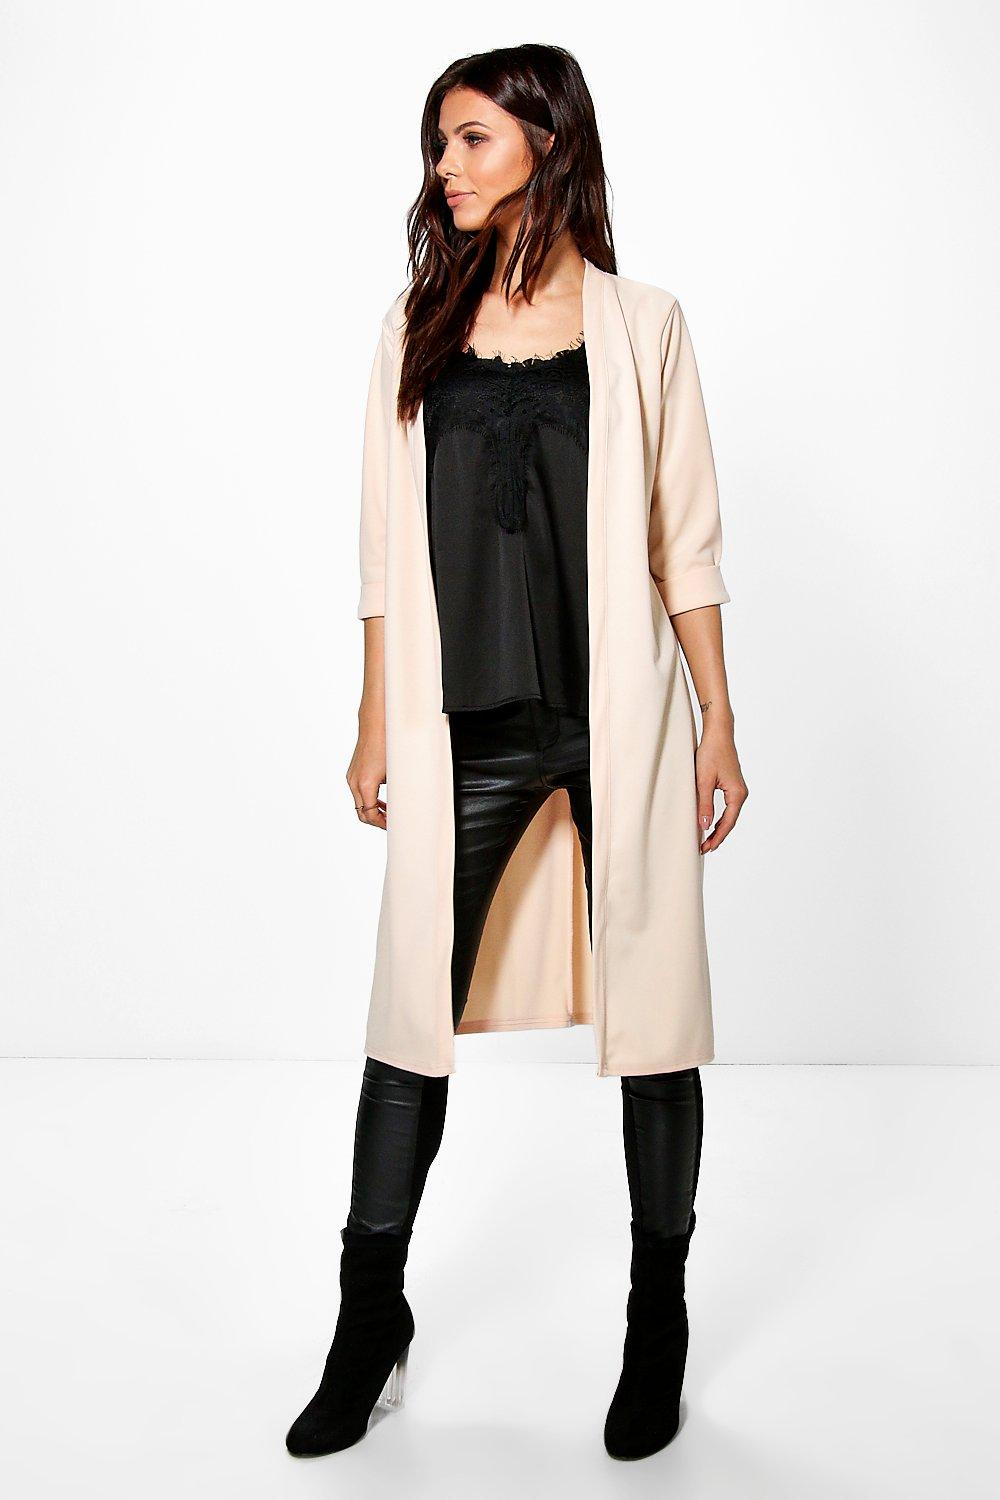 Emilia Turn Up Cuff Duster